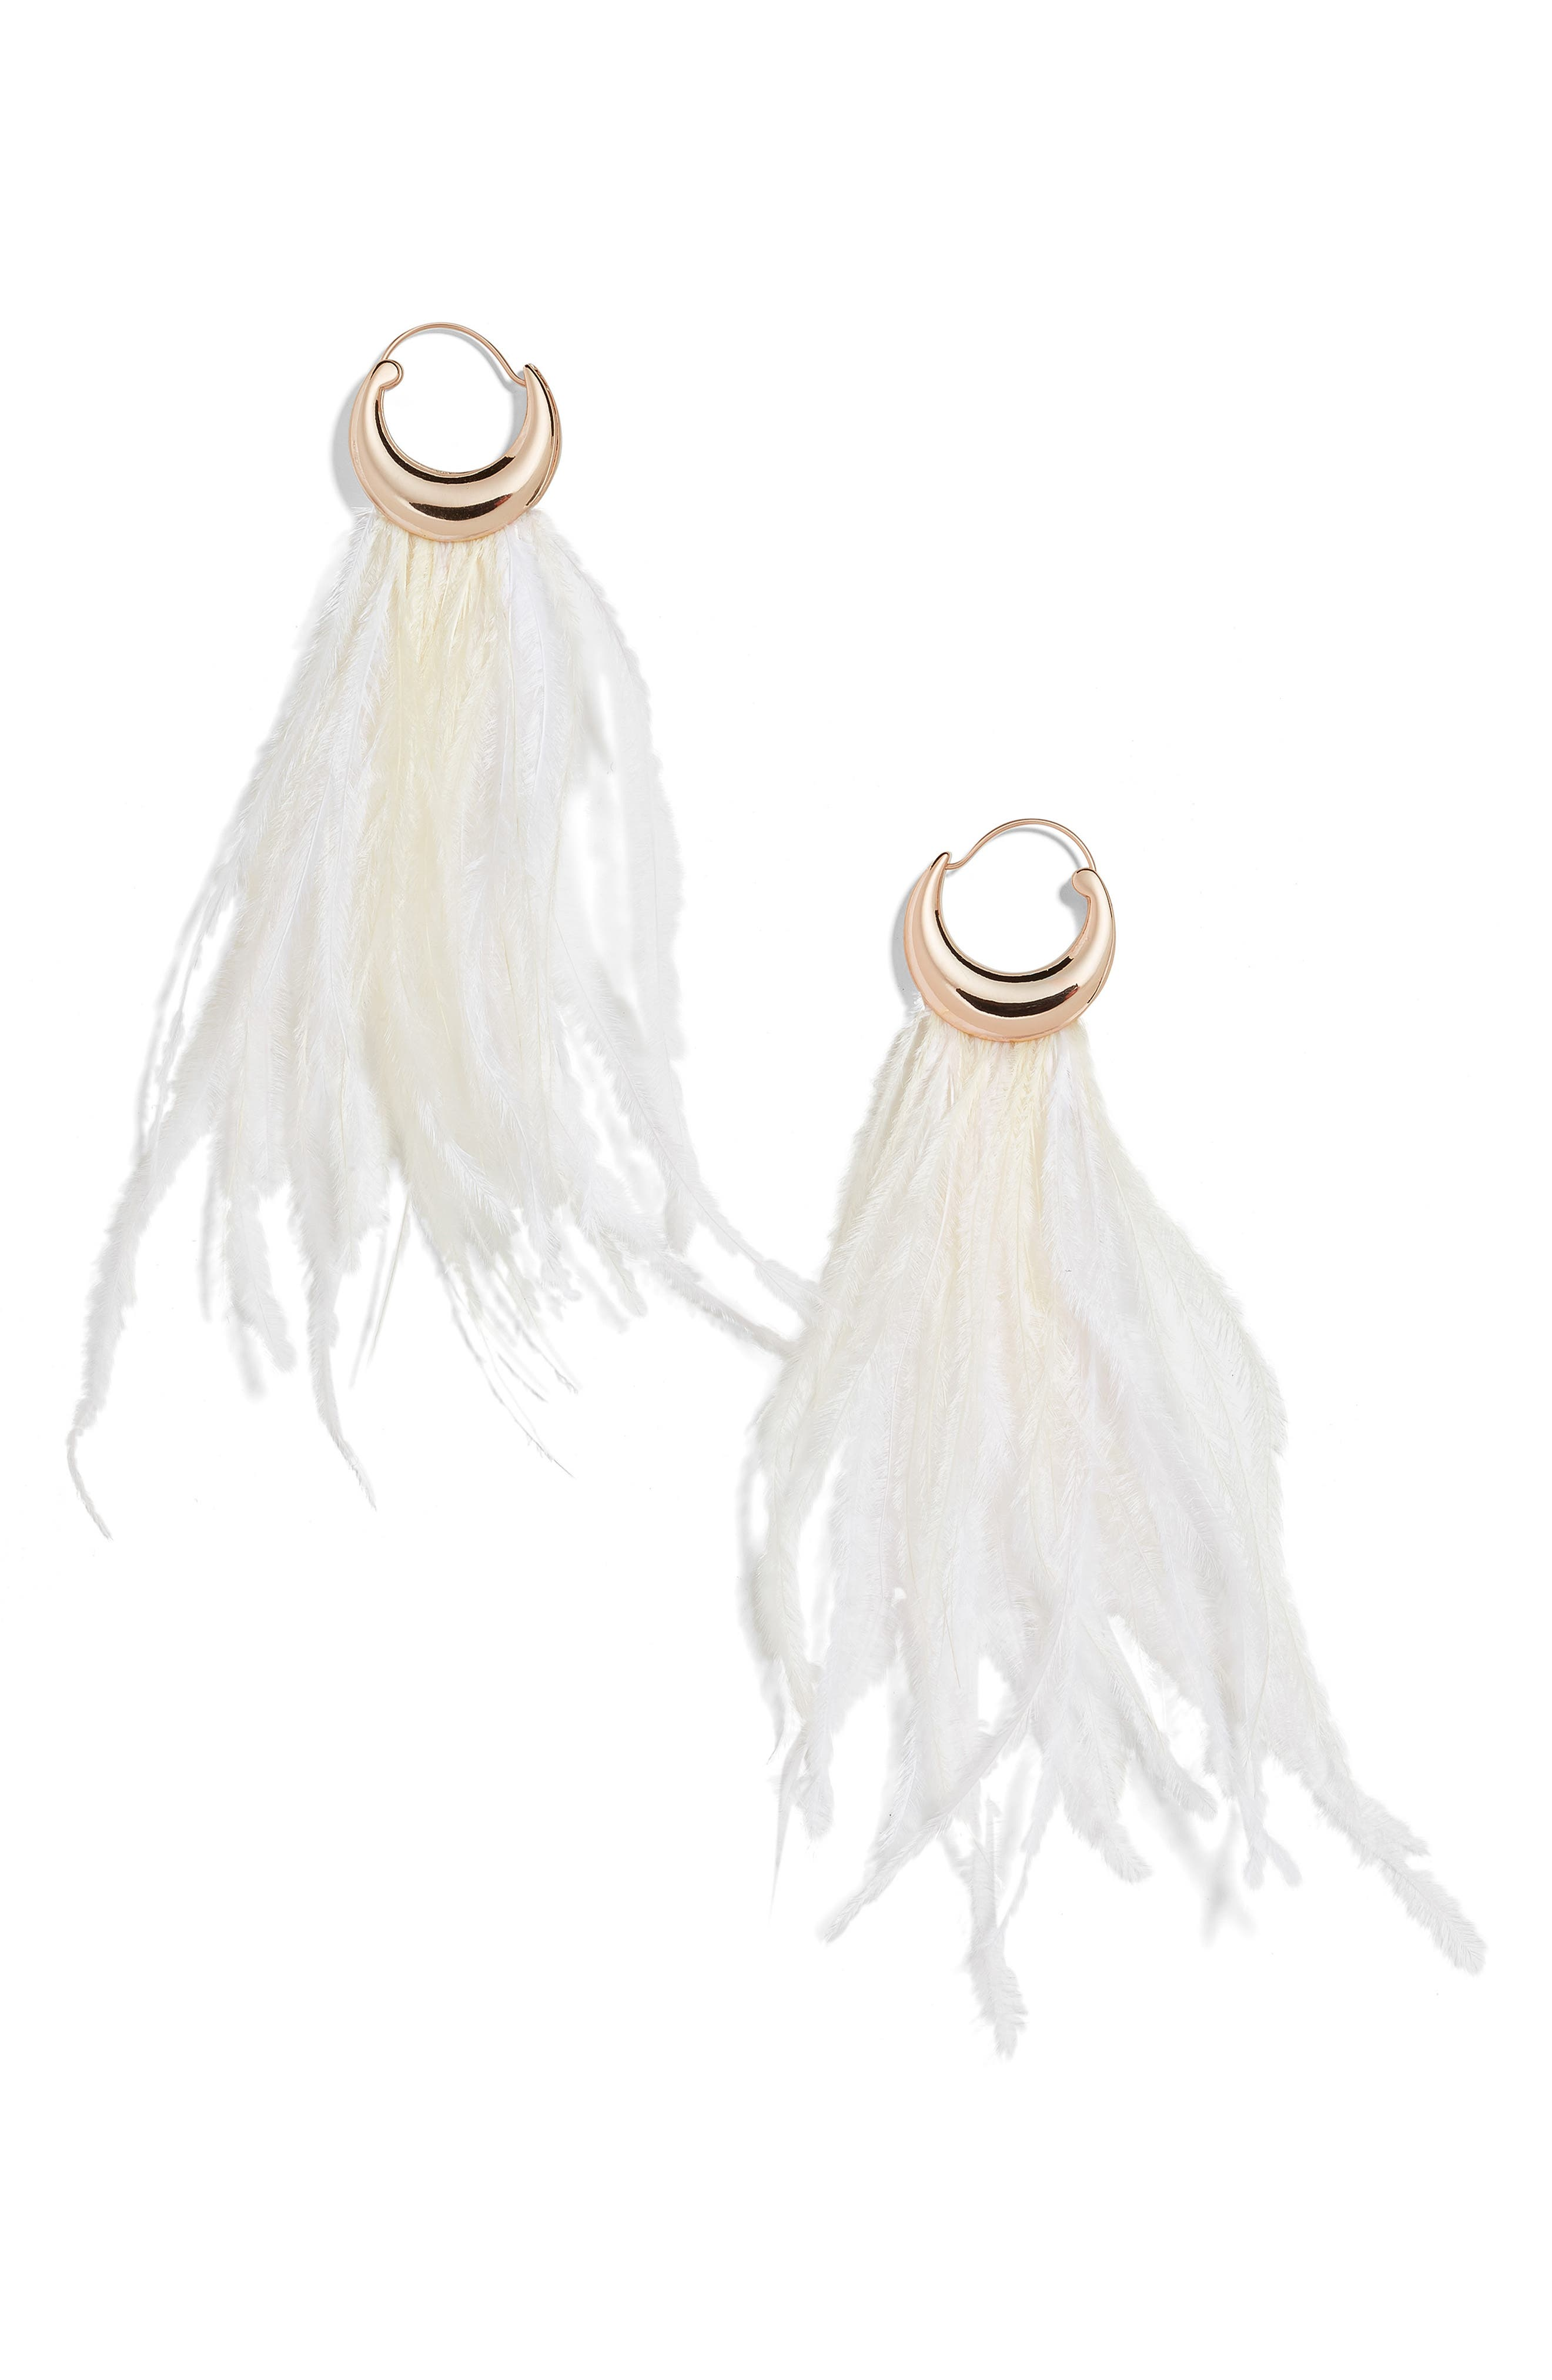 BAUBLEBAR, Charla Feather Drop Earrings, Main thumbnail 1, color, IVORY/ BLUSH